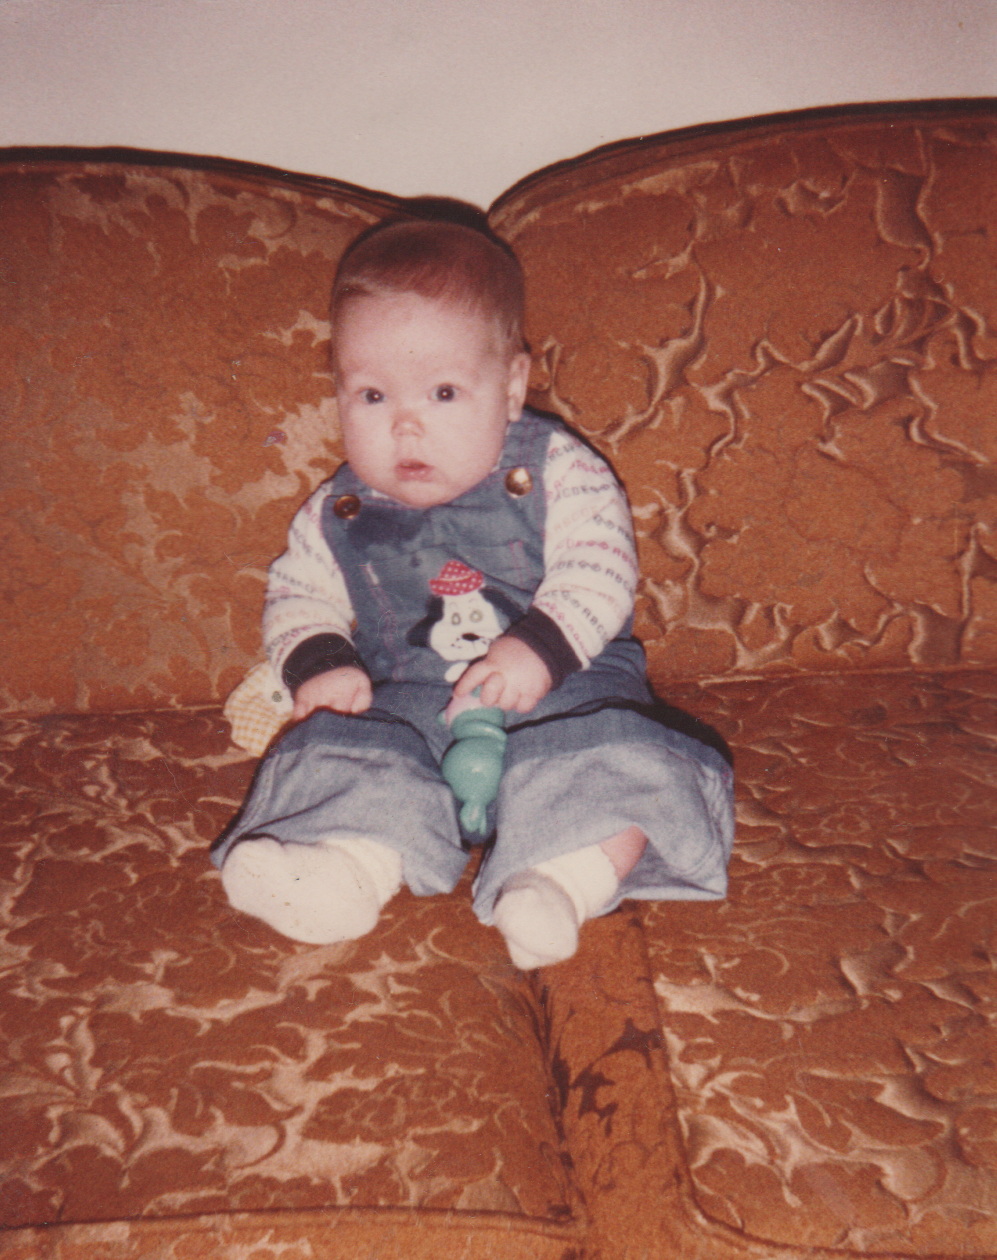 1981 maybe - Katie - Sitting on a couch.png